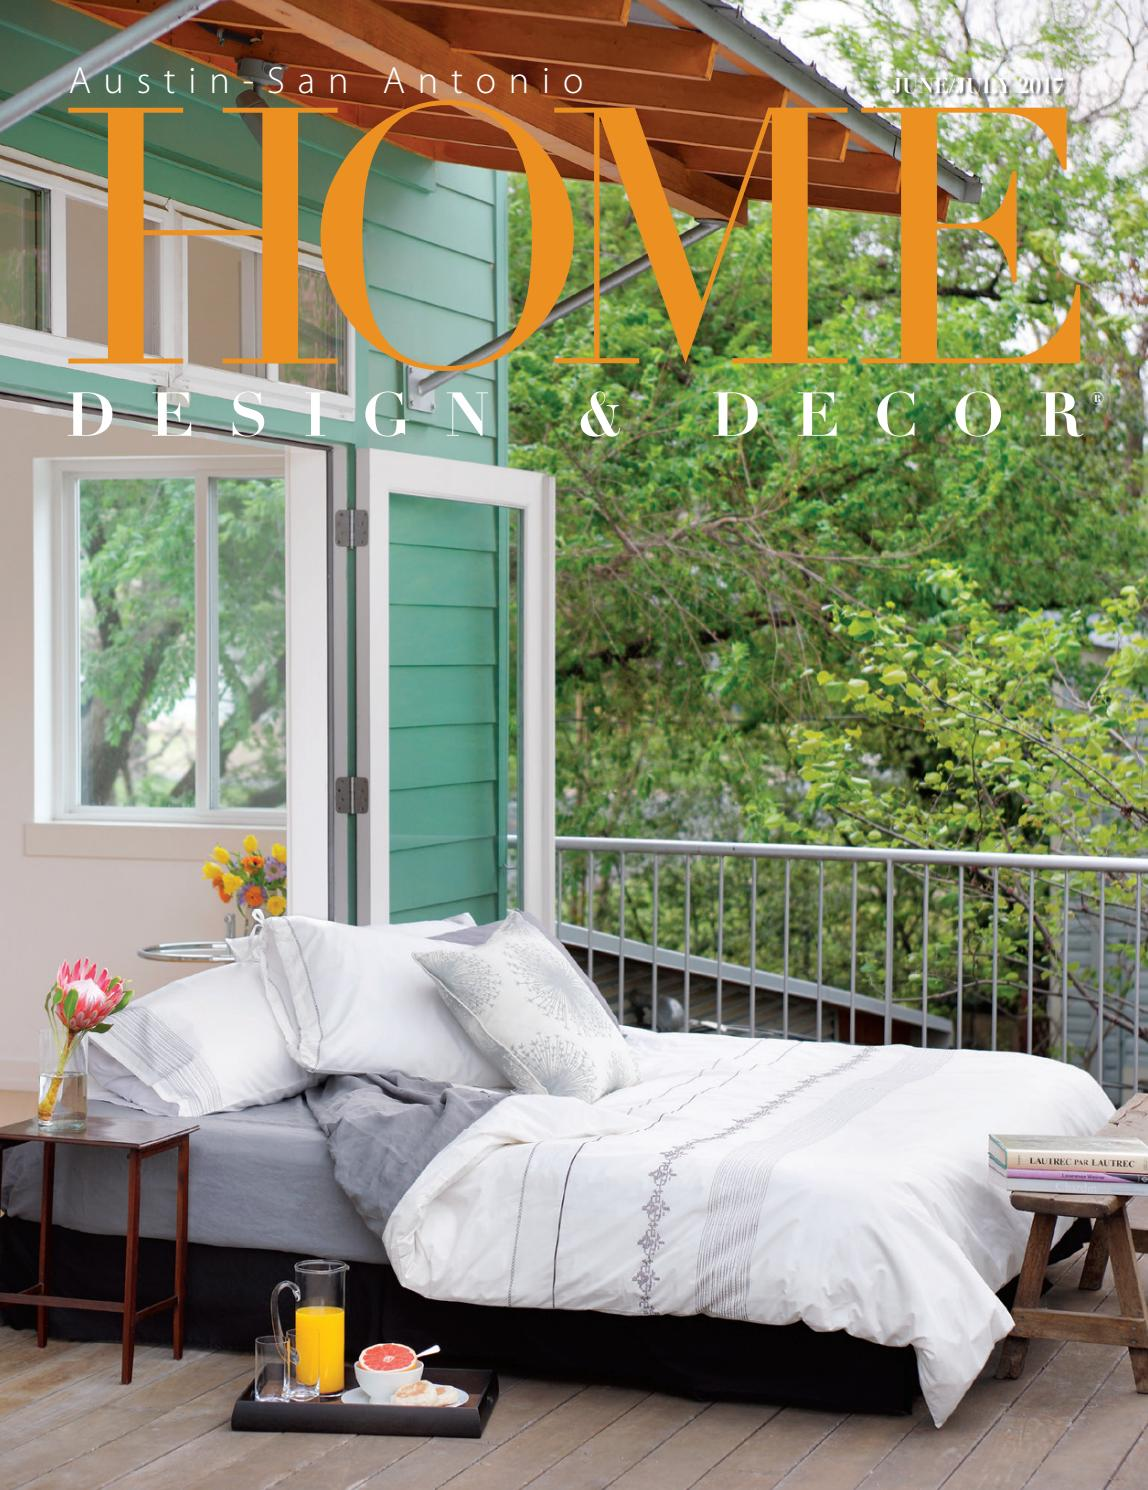 Home Design Decor Austin San Antonio June July 2017 By Trisha Doucette Issuu